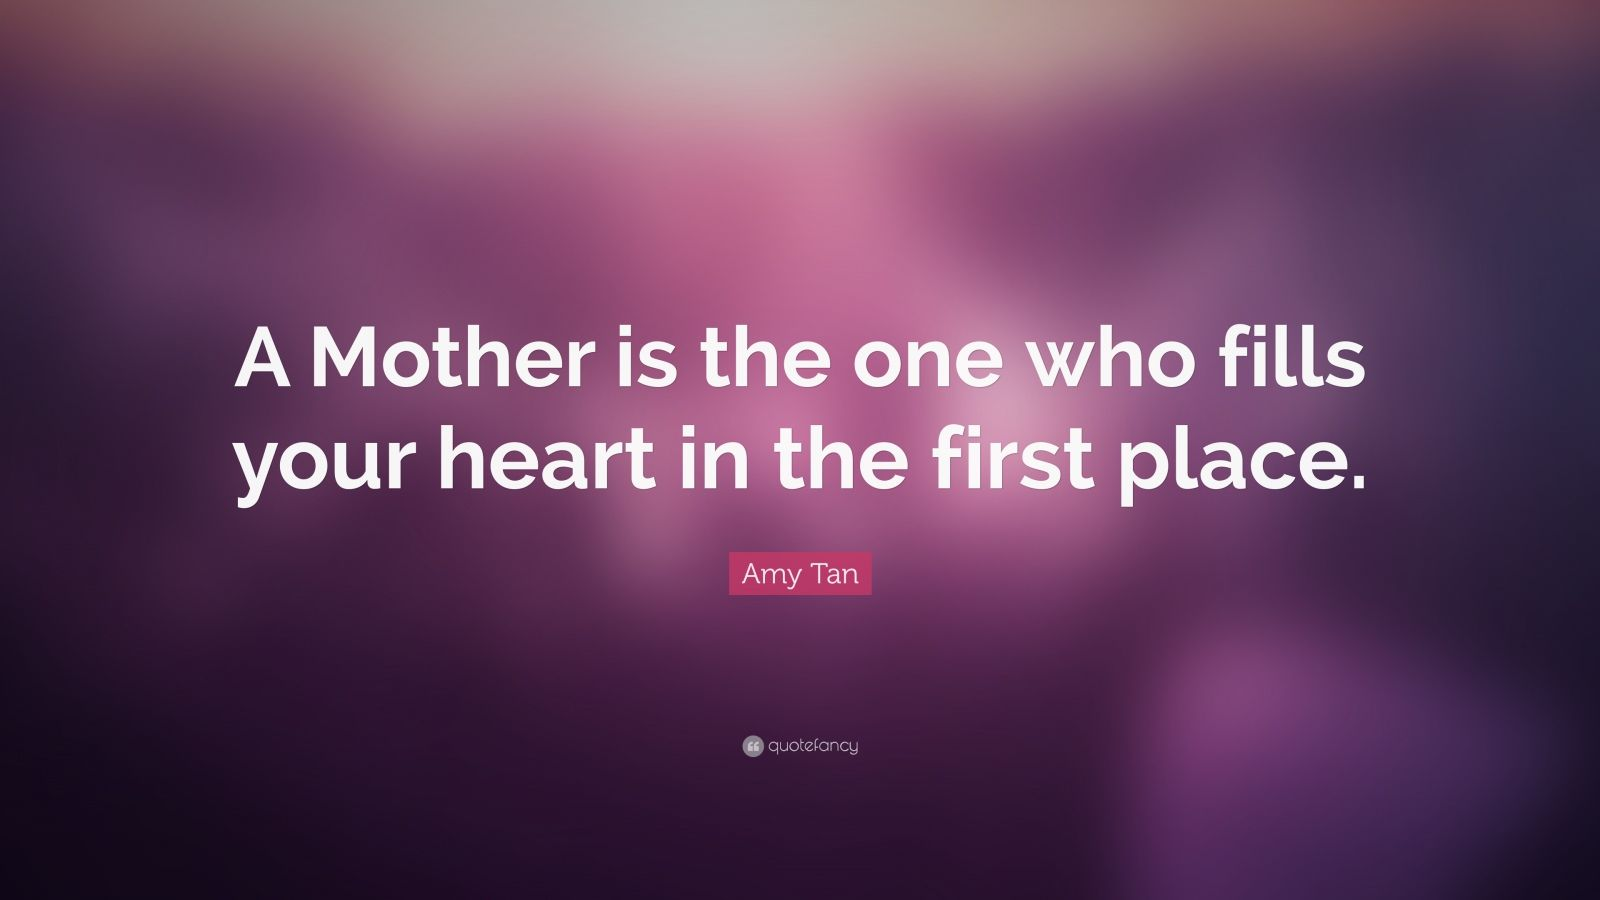 amy tan quotes quotefancy amy tan quote a mother is the one who fills your heart in the